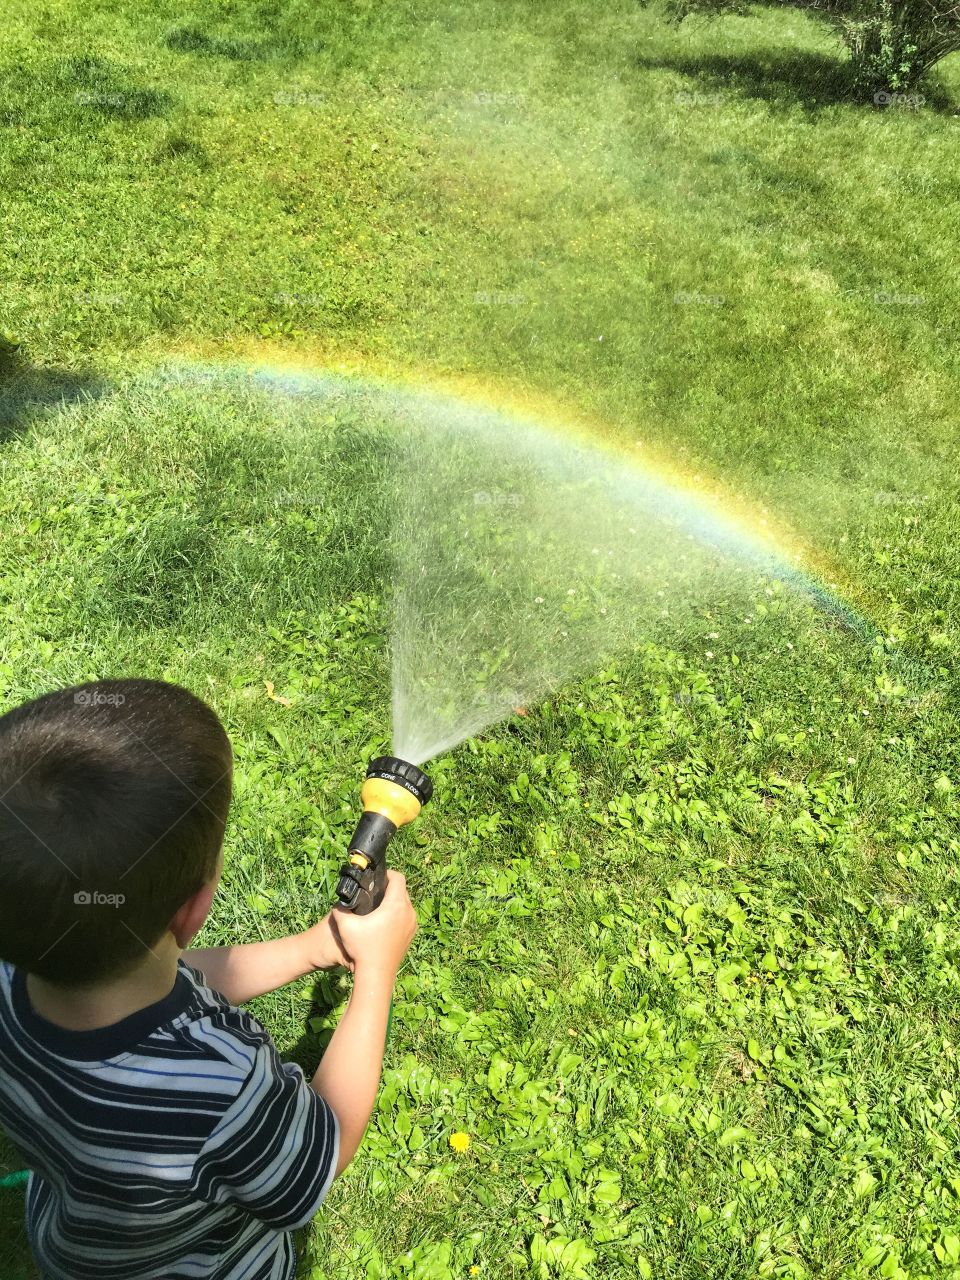 Making Rainbows with the Hose